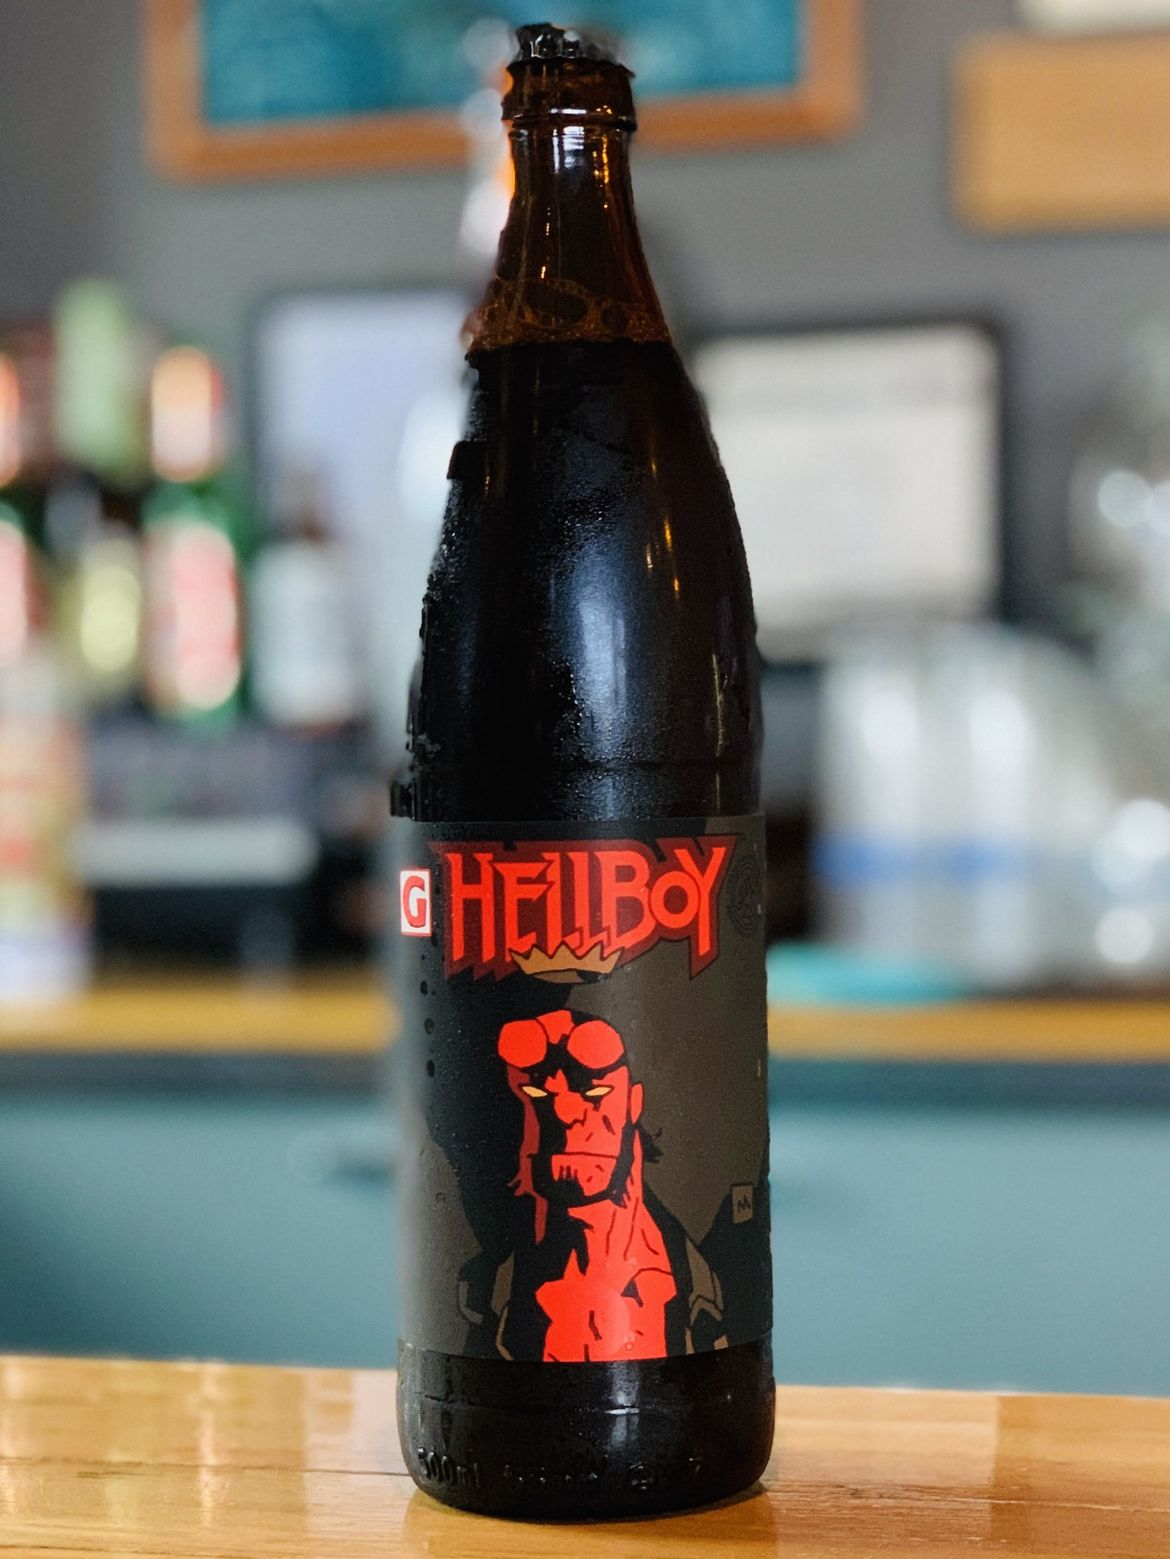 Bellboy Beer bottle